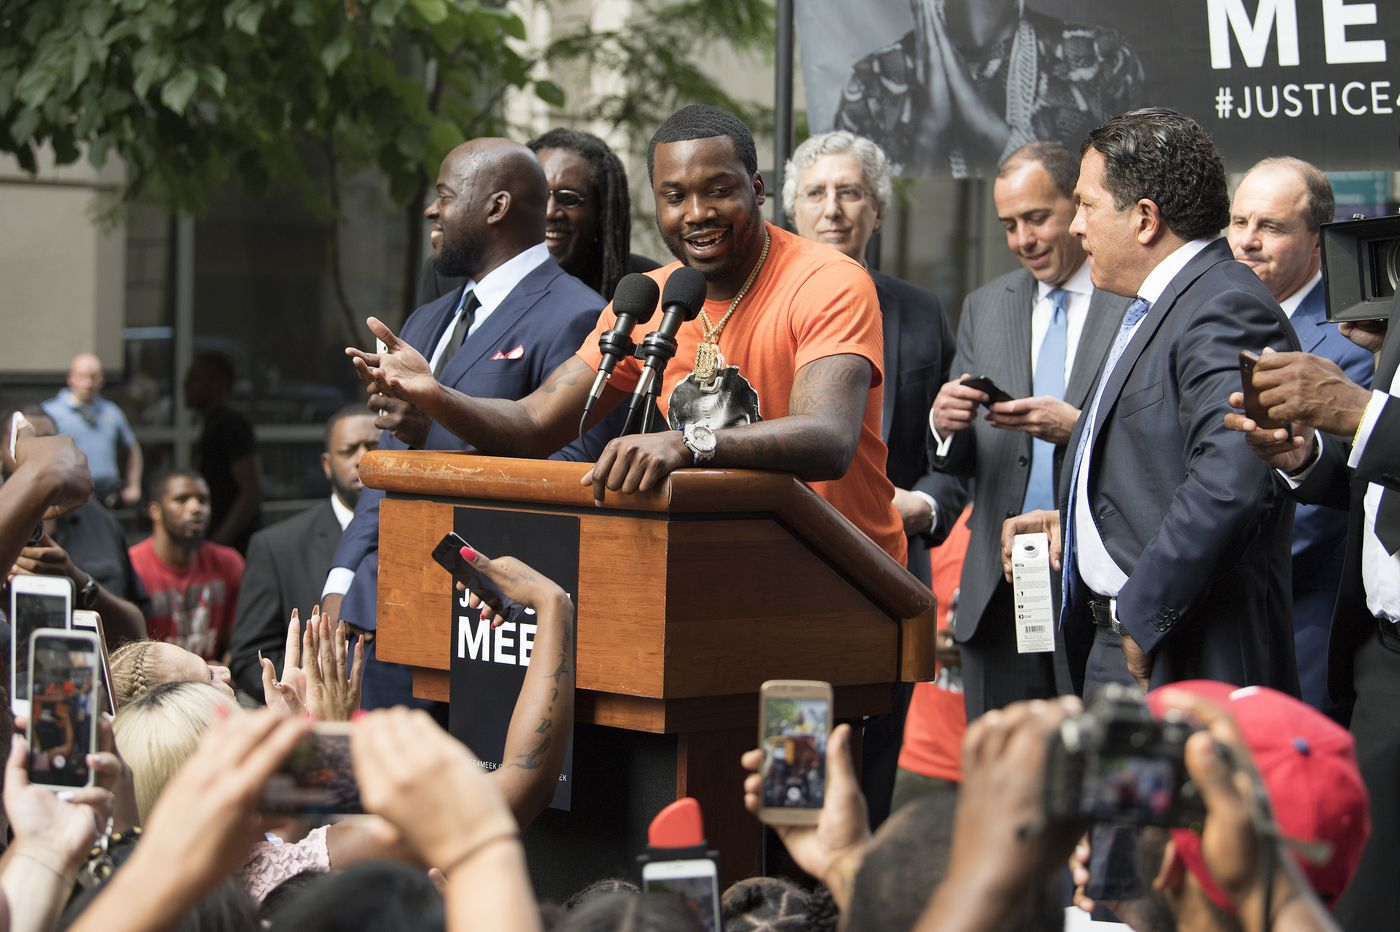 Meek Mill hearing before Judge Genece Brinkley devolves into a laughing matter